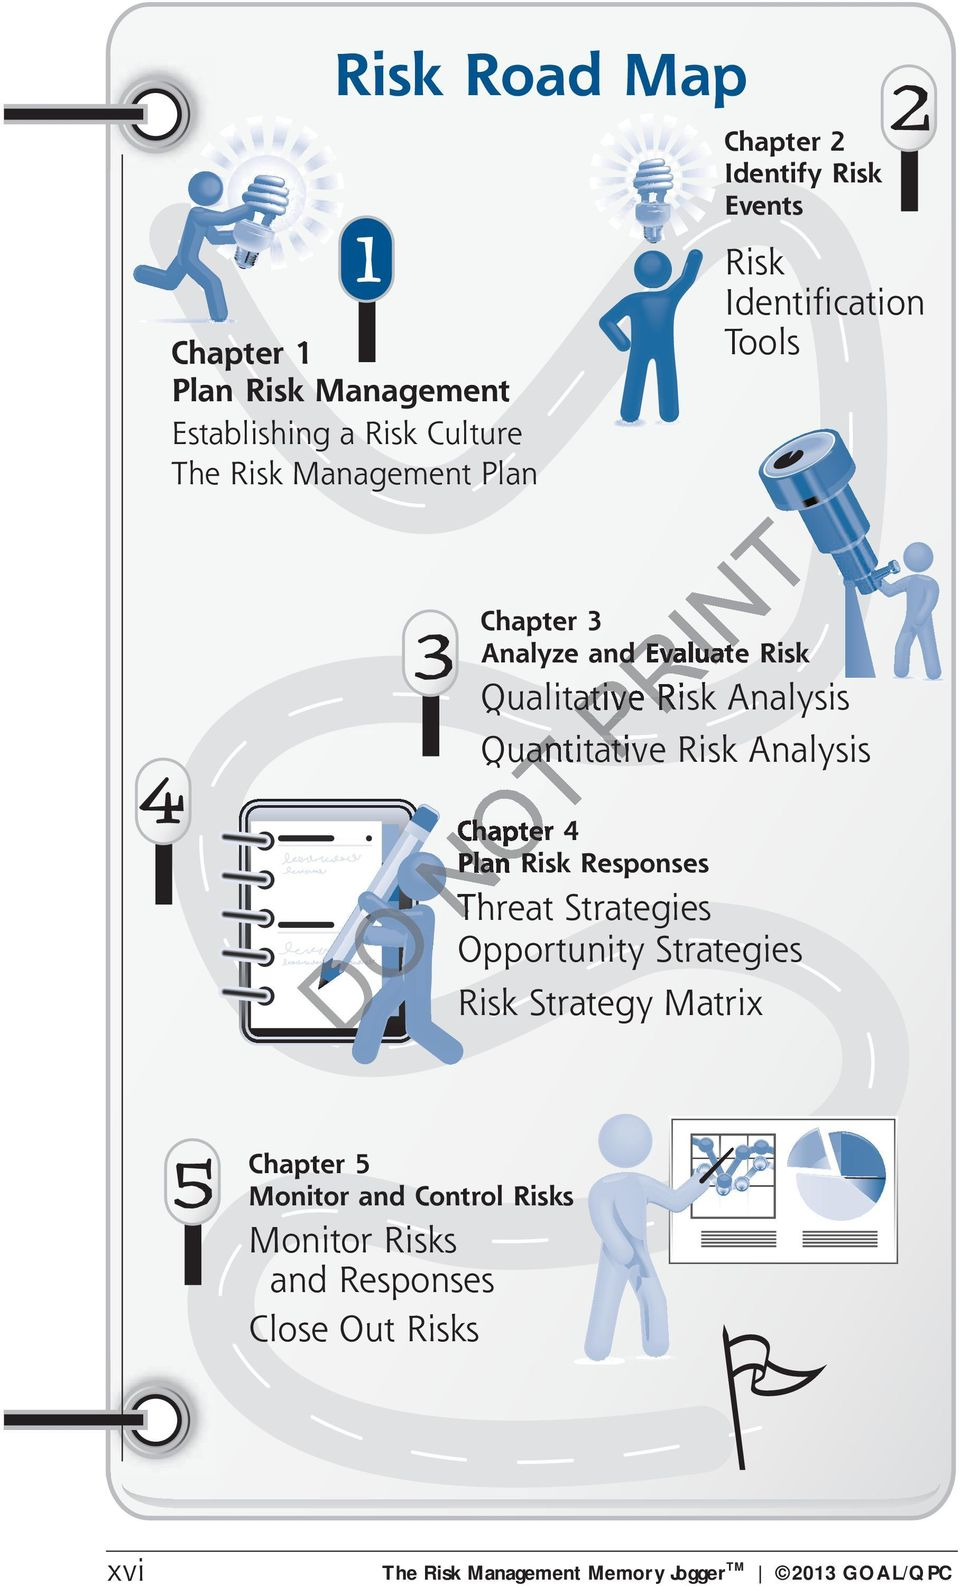 Strategy Matrix 2 Risk Identification Tools Qualitative ative Risk Analysis Quantitative ati Risk Analysis DO T PRINT 5 Chapter